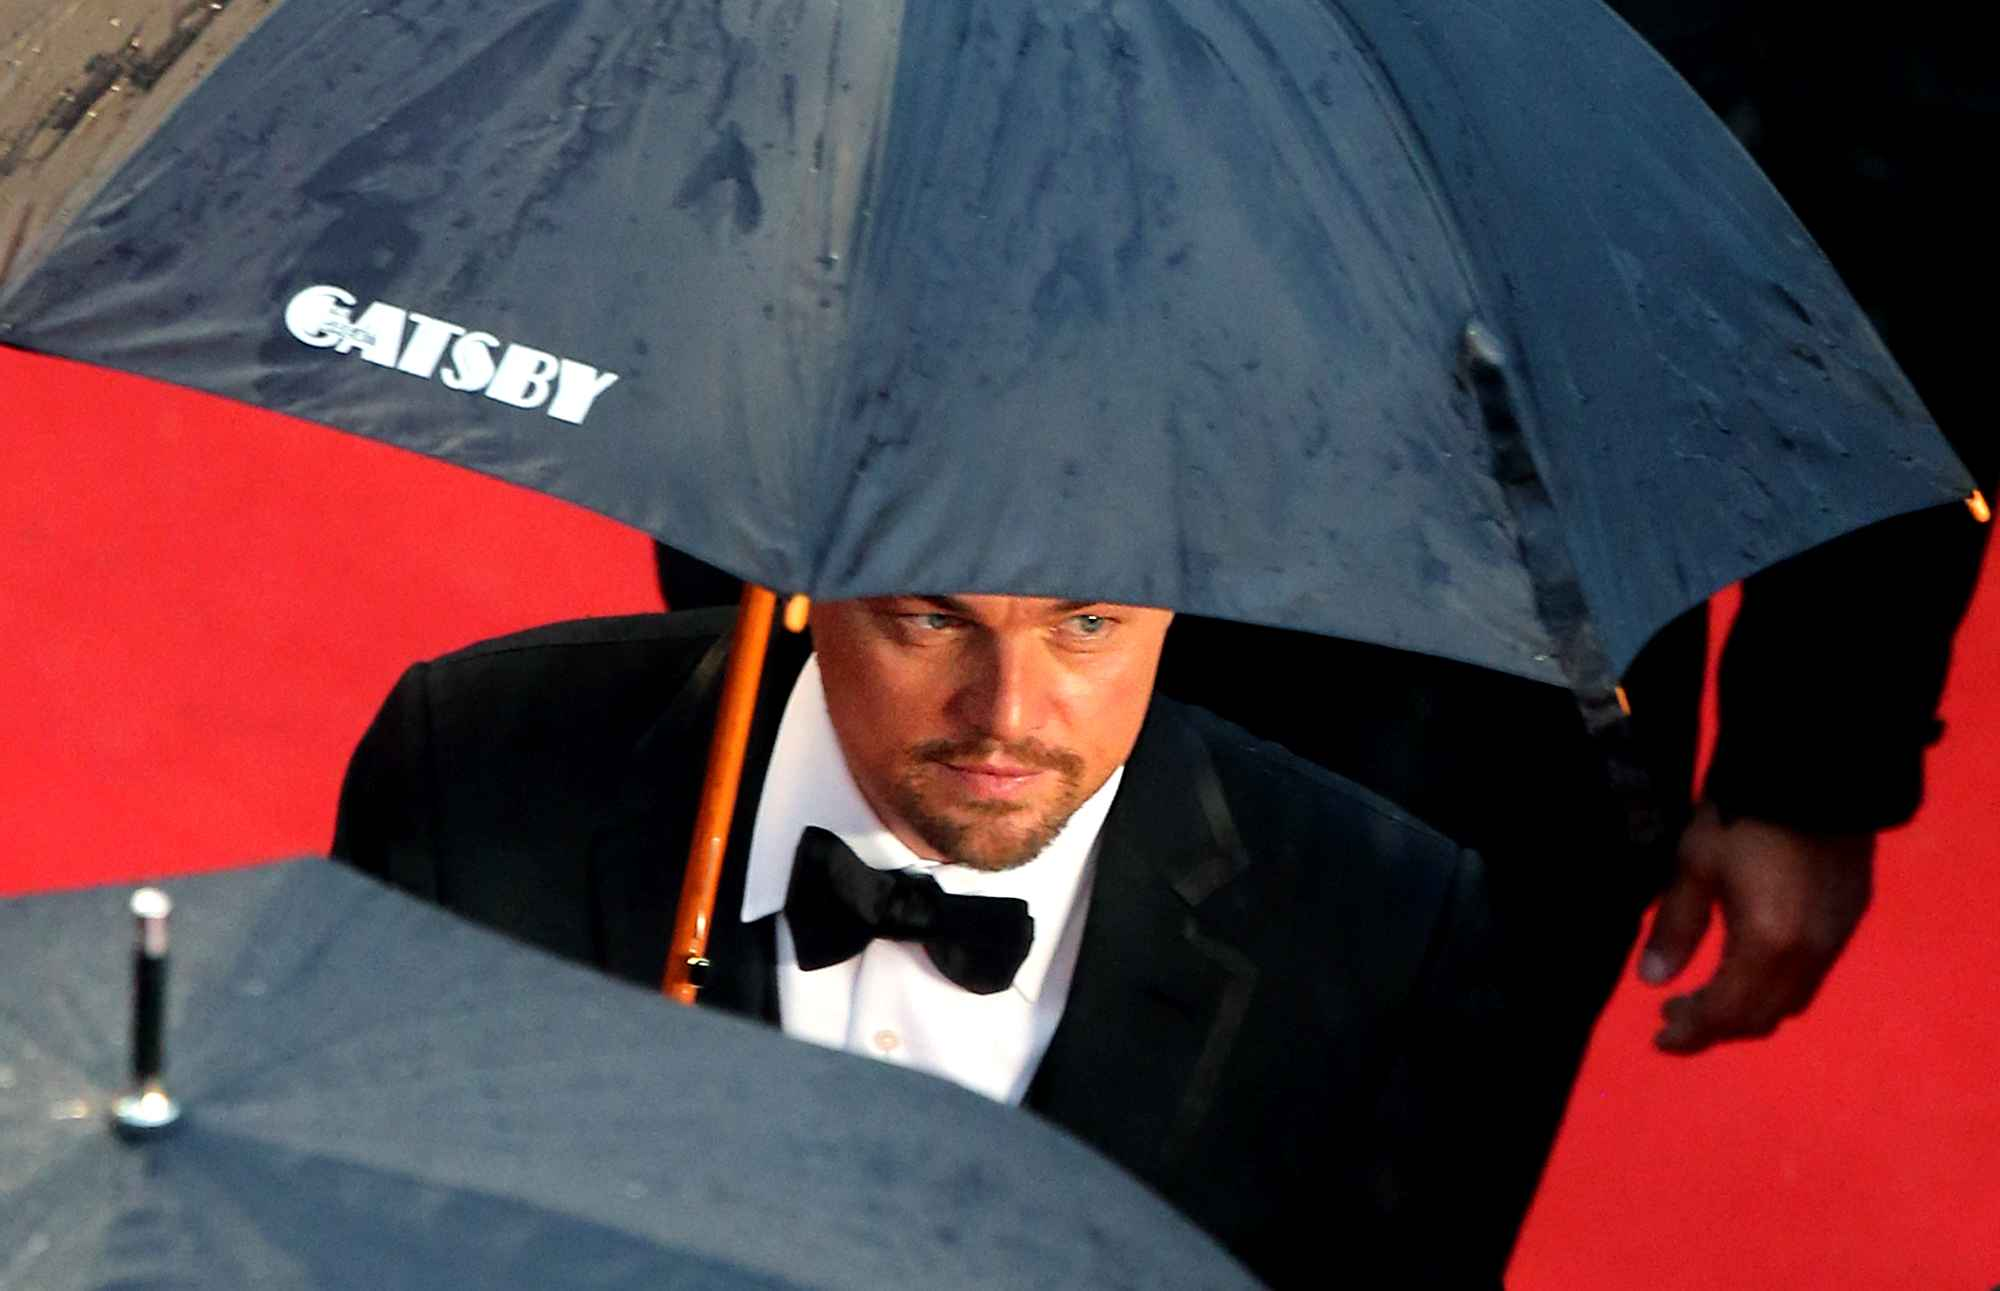 Di Caprio and his Gatsby personalized umbrella in Cannes